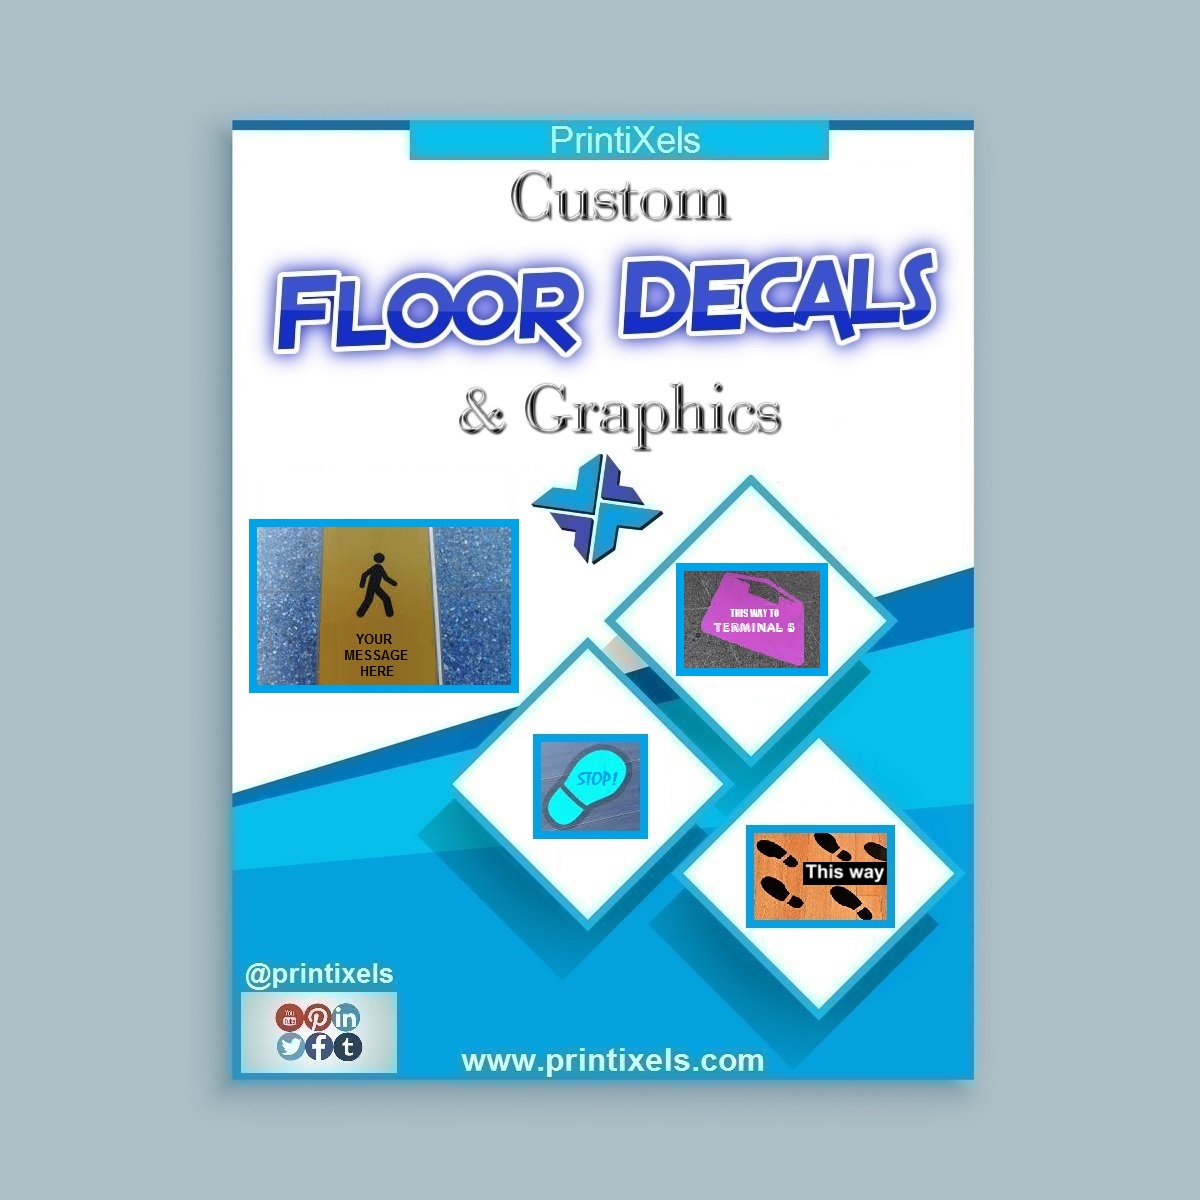 Custom Floor Decals & Graphics